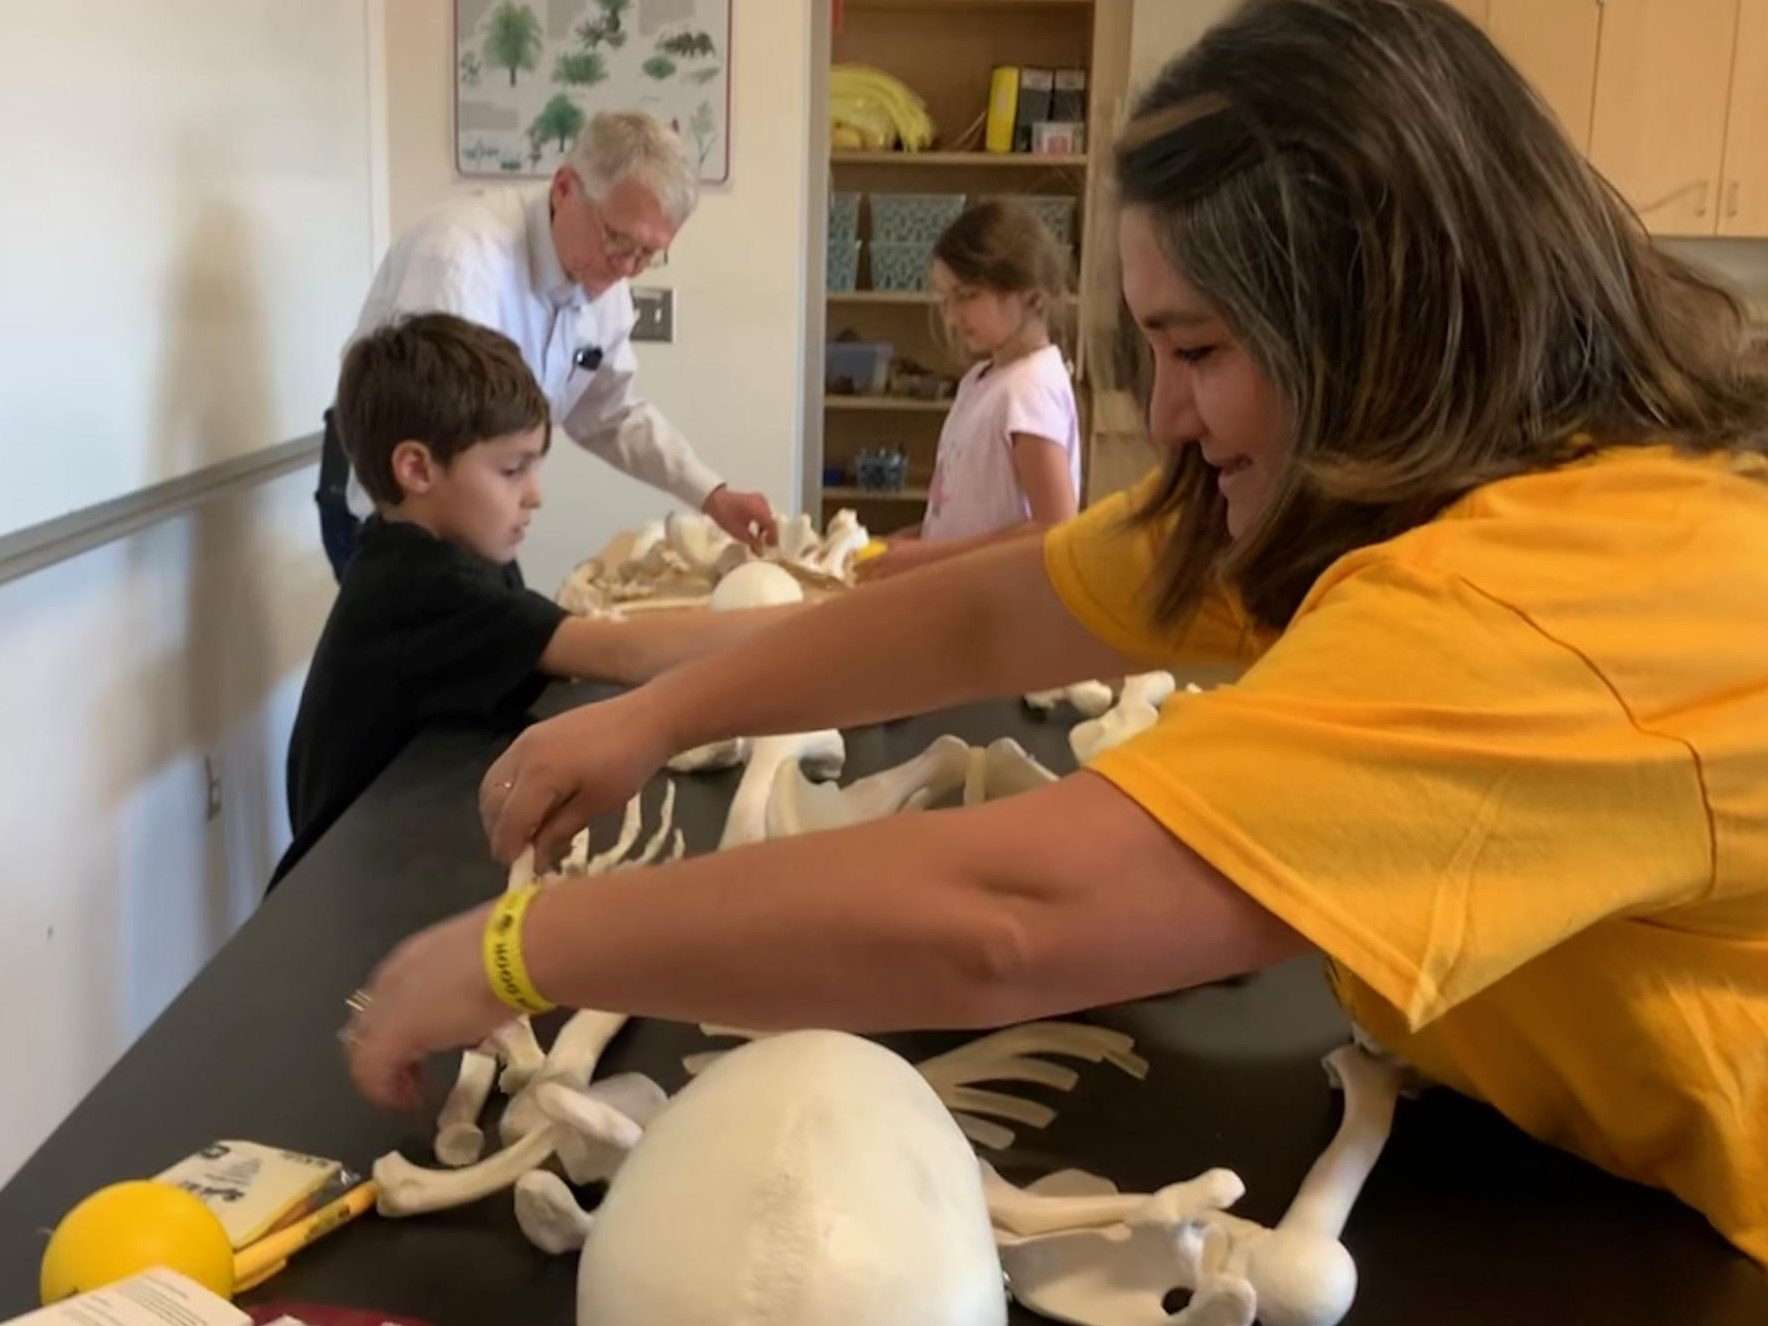 Emel Topal, her son and daughter race with College of Integrative Sciences and Arts dean Duane Roen to assemble lab skeletons at 2019 ASU Open Door event